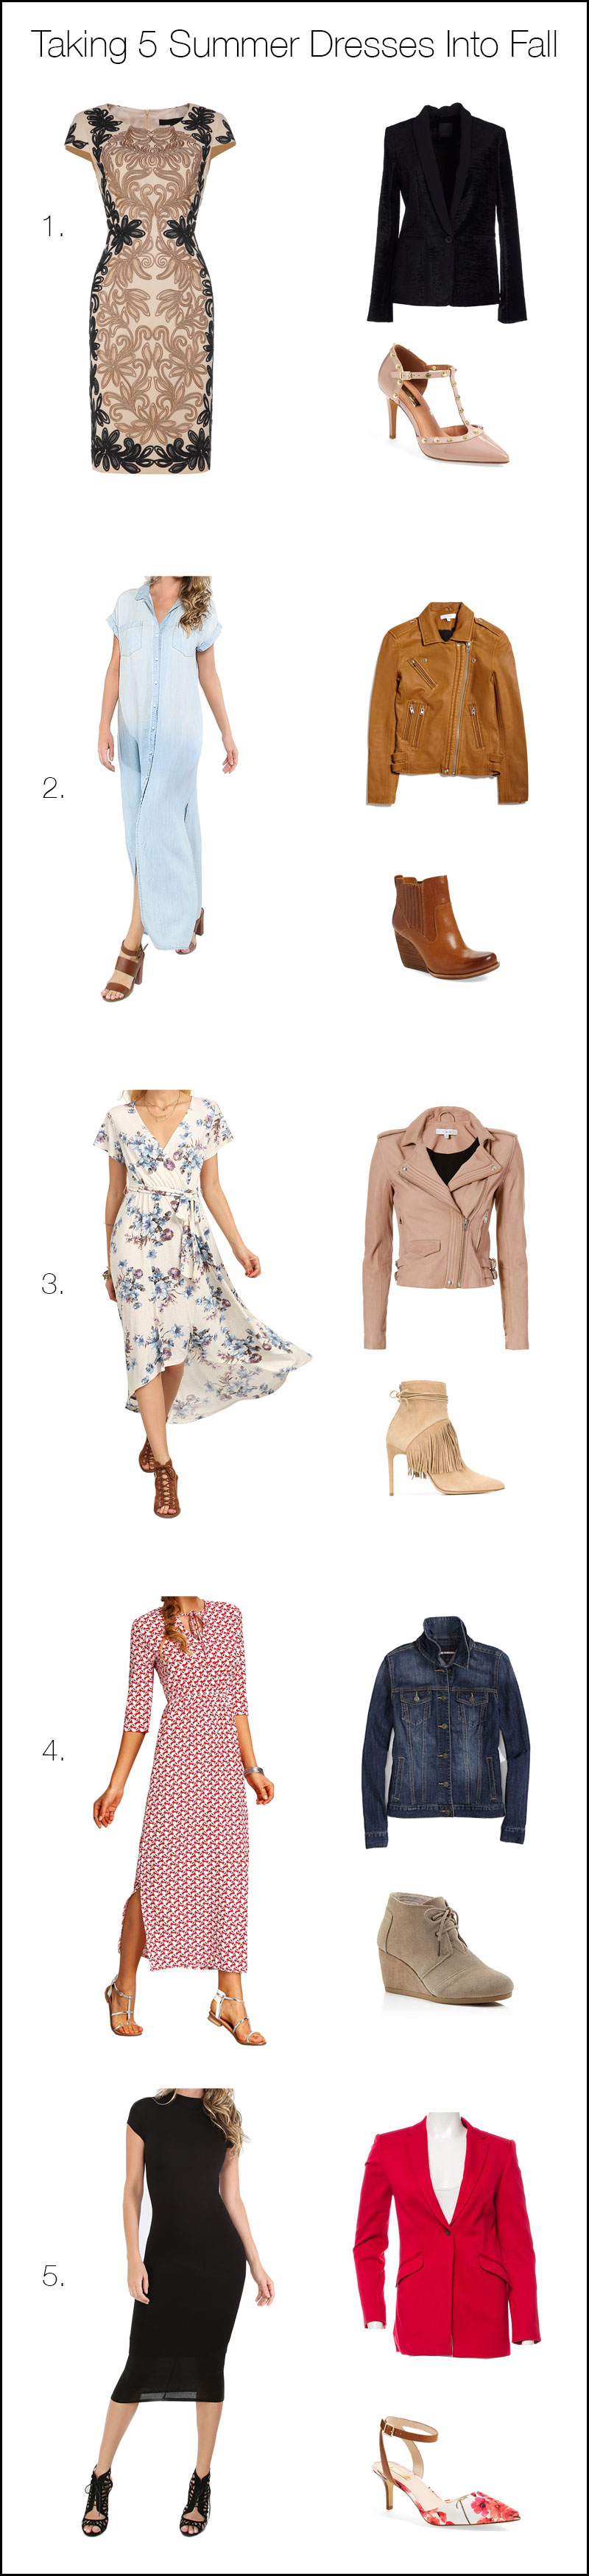 5-summer-dresses-to-fall